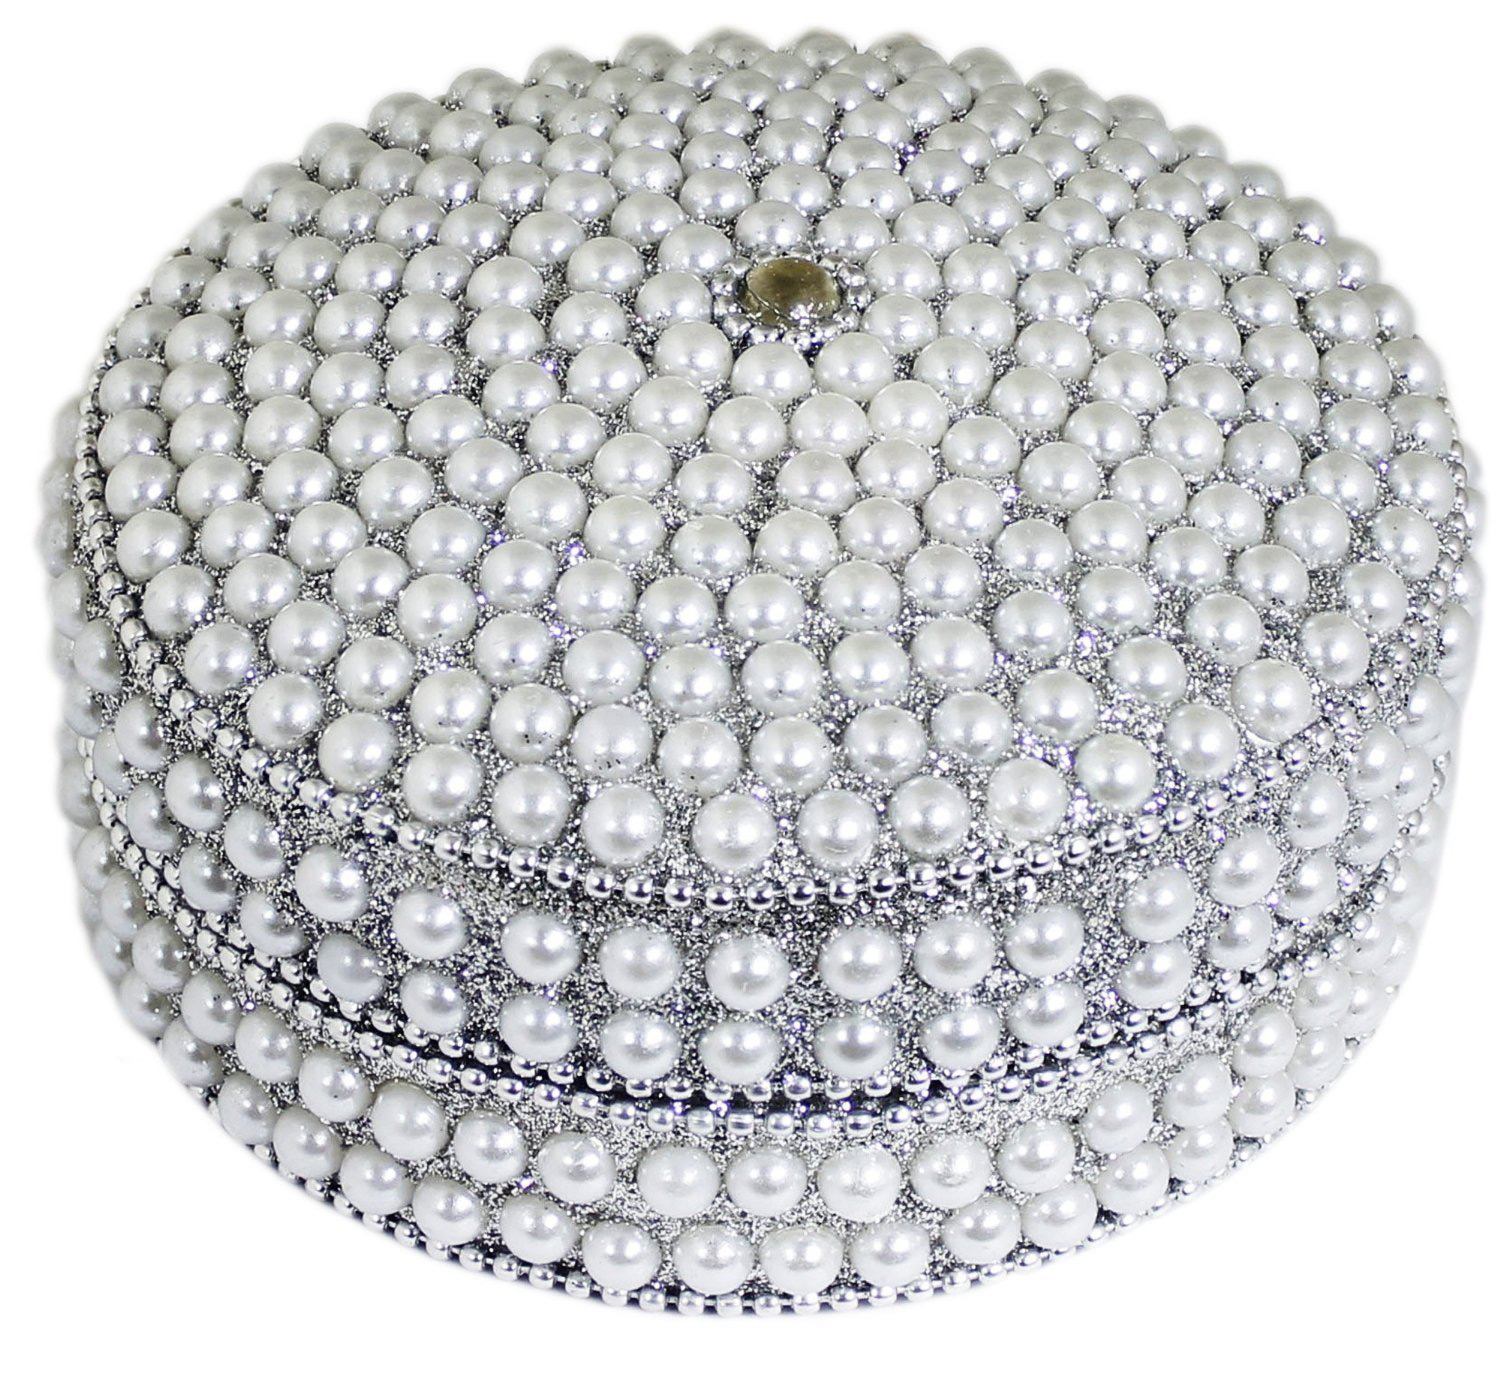 Stunning Antique Silver Bead Covered Jewelry Box